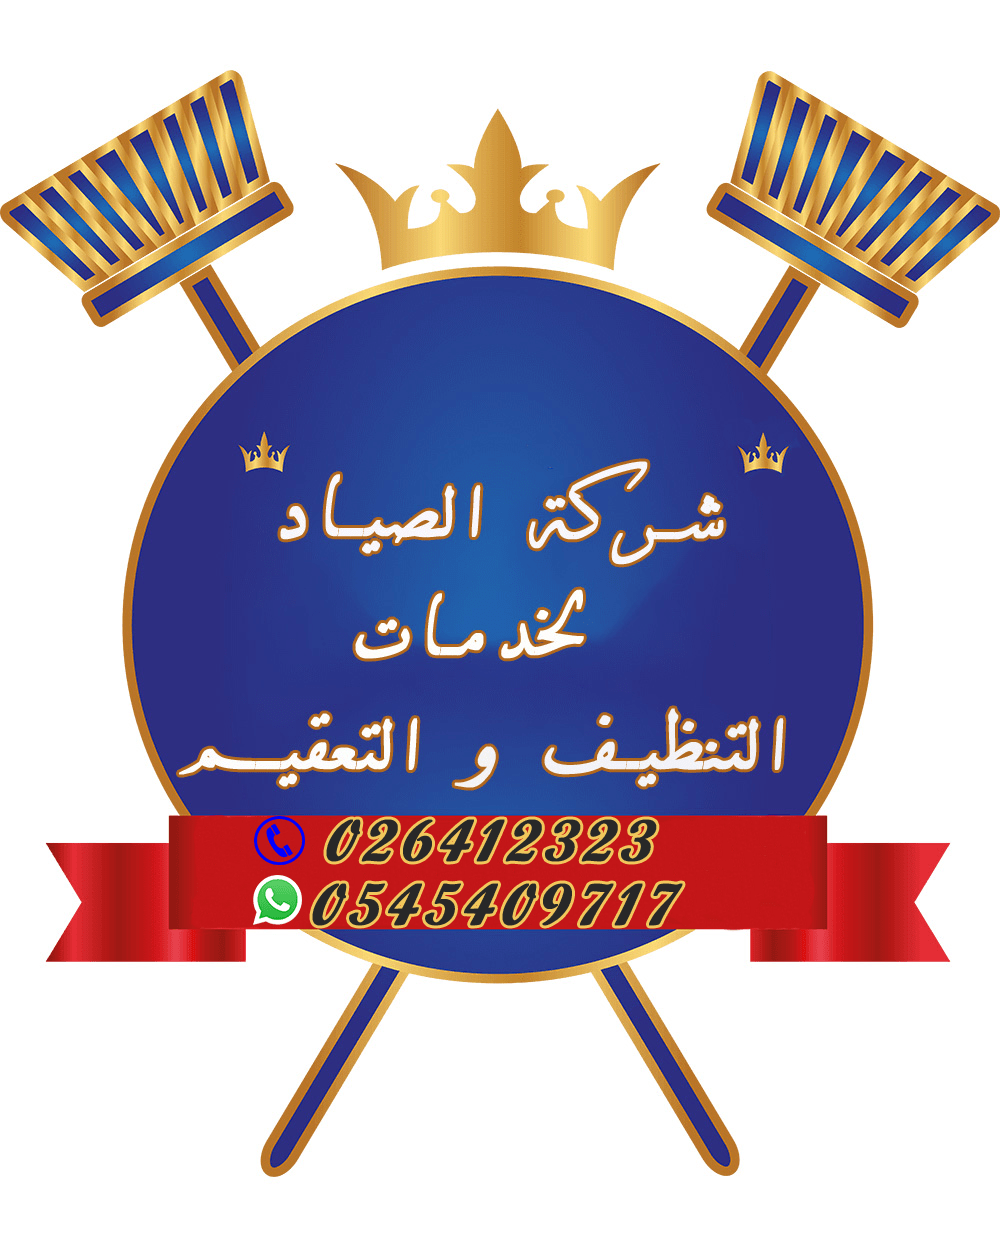 Al Sayyad Pest Control&cleaning Services 1